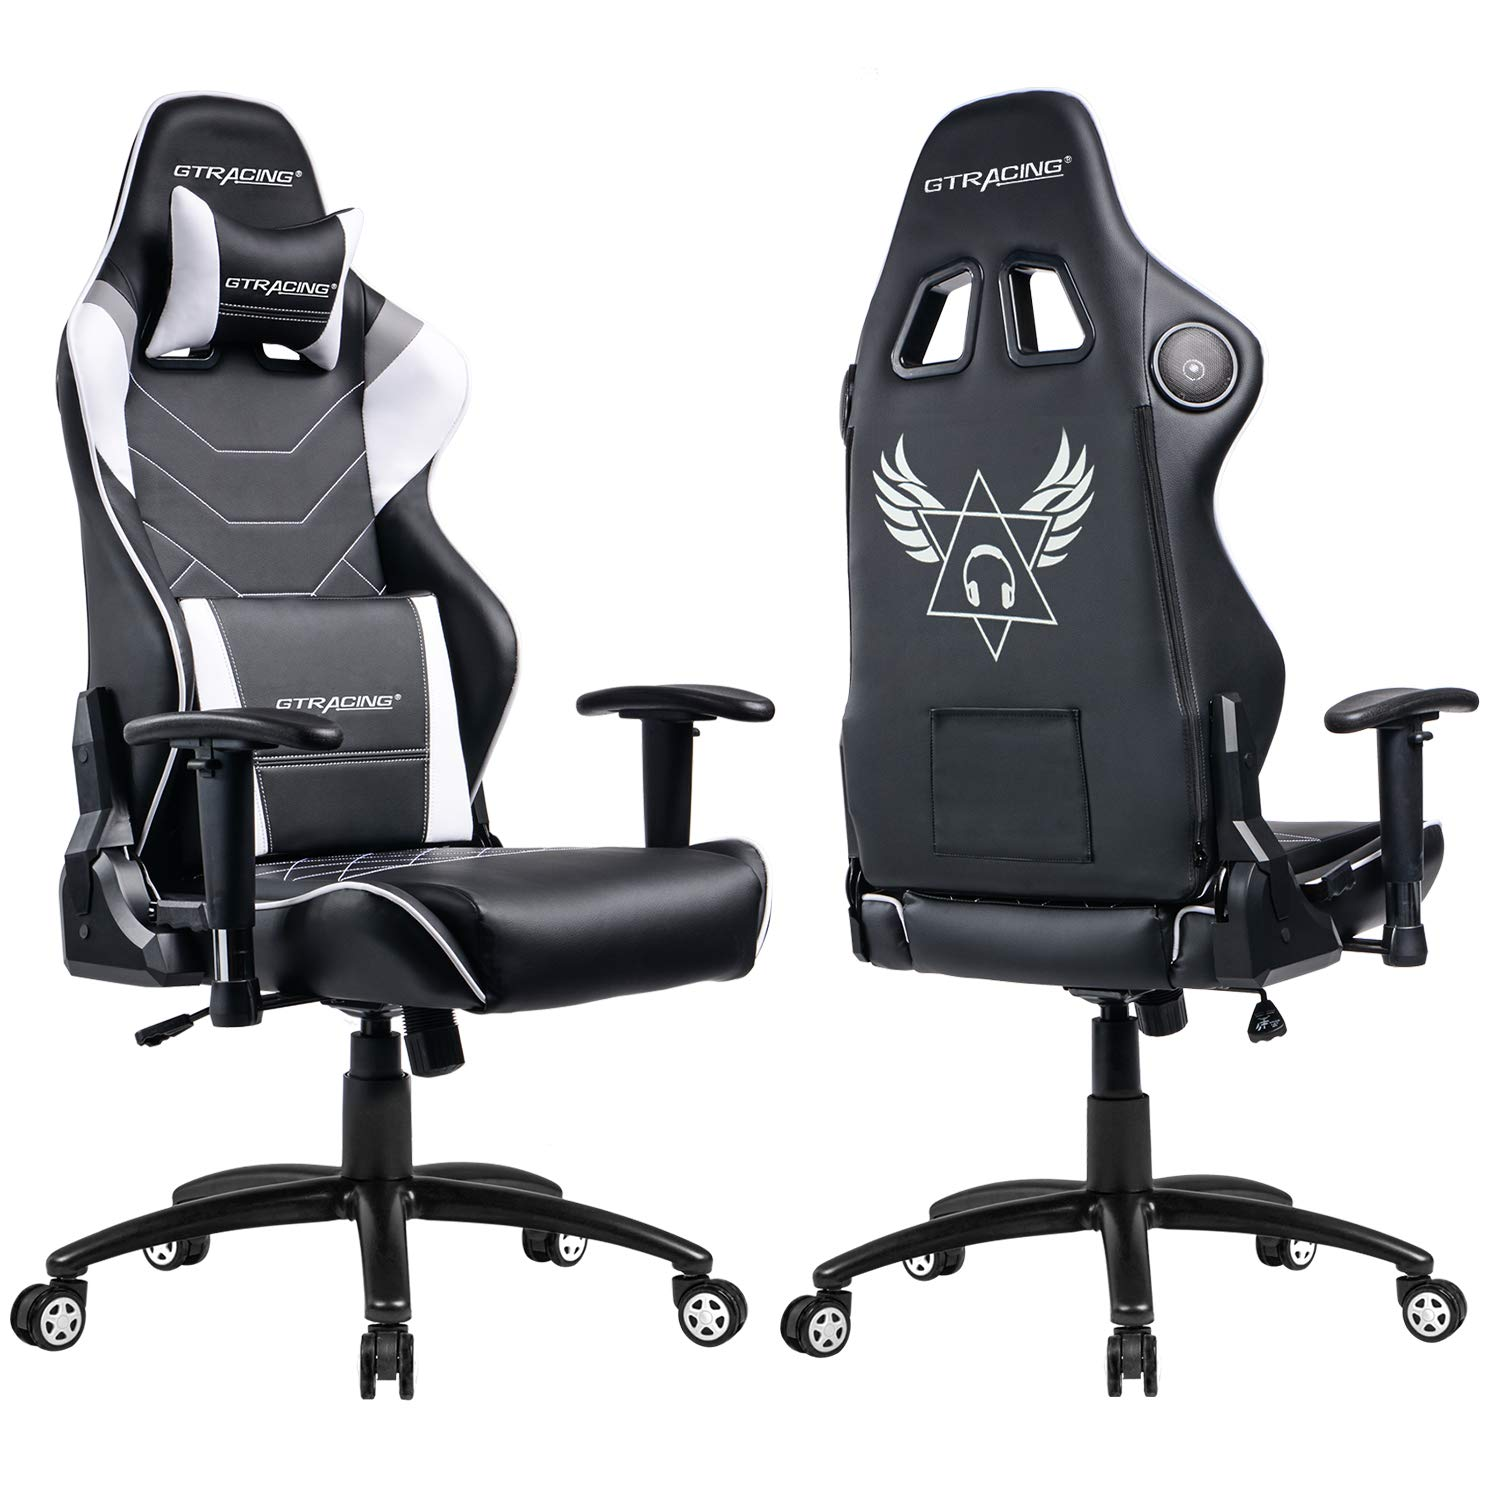 Gtracing Music Gaming Chair With Bluetooth Speaker